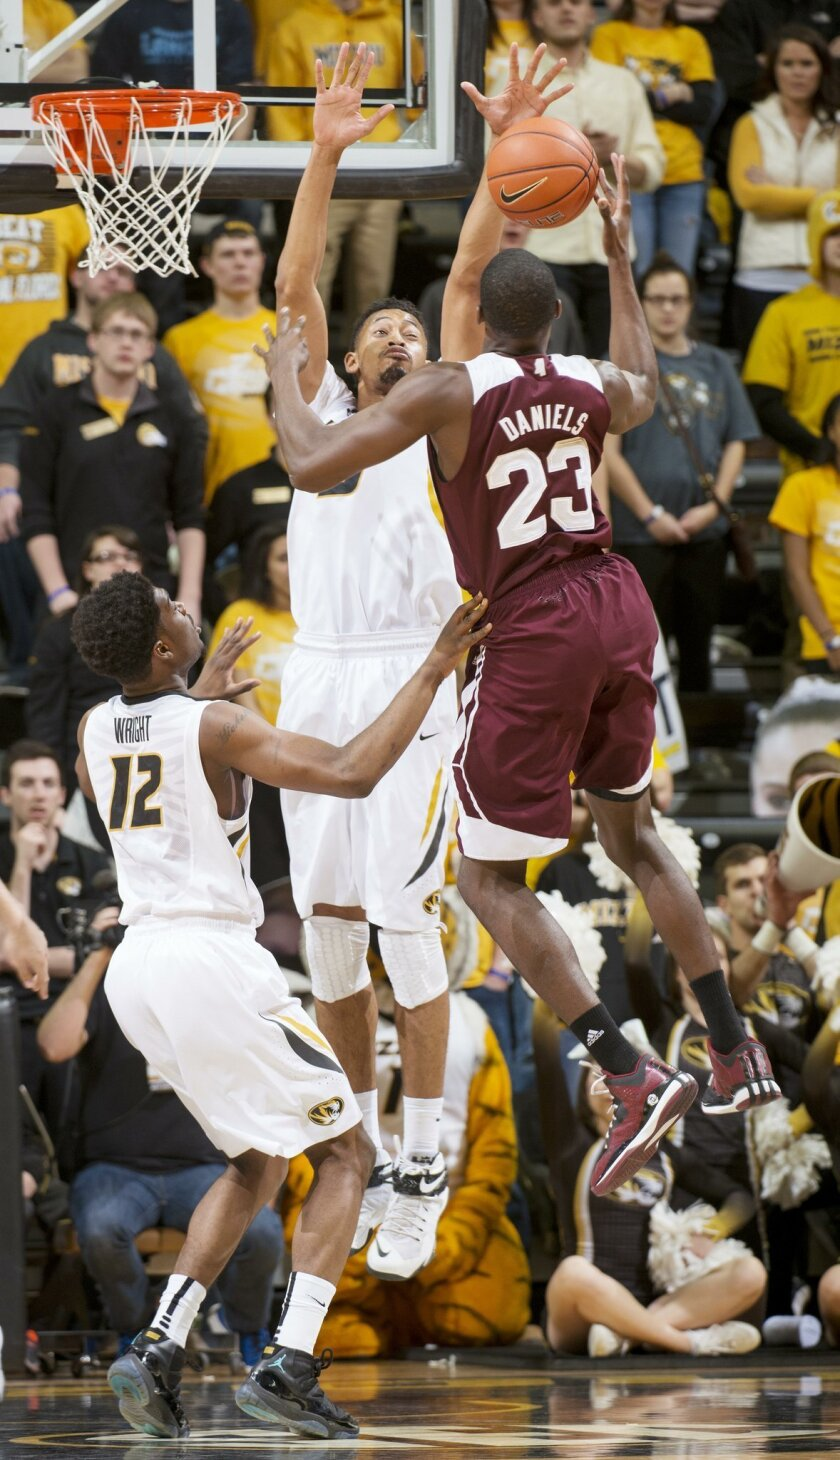 Mississippi State's Travis Daniels, right, has his shot blocked by Missouri's Johnathan Williams III, center, as Missouri's Namon Wright, left, looks on during the first half of an NCAA college basketball game Saturday, Feb. 14, 2015, in Columbia, Mo. (AP Photo/L.G. Patterson)